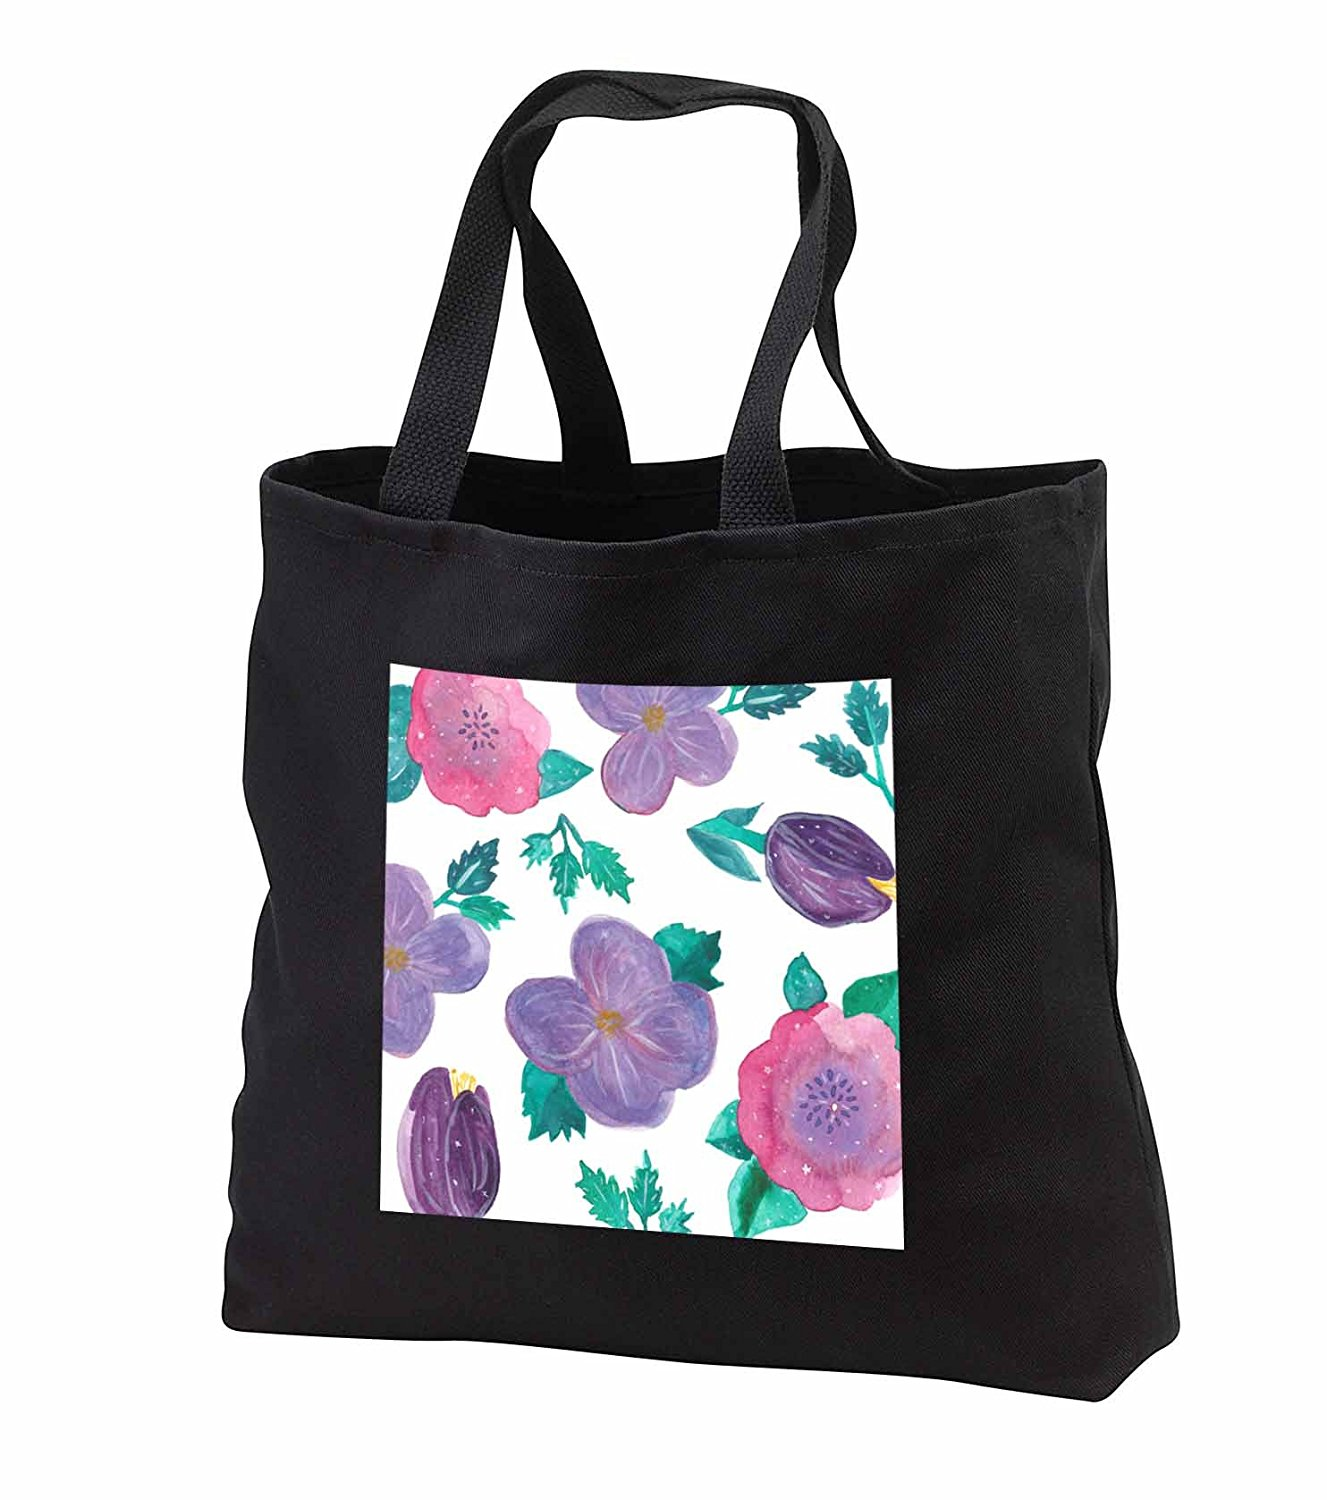 tb_252129 Janna Salak Designs Boho - Watercolor Floral Pink and Purple - Tote Bags